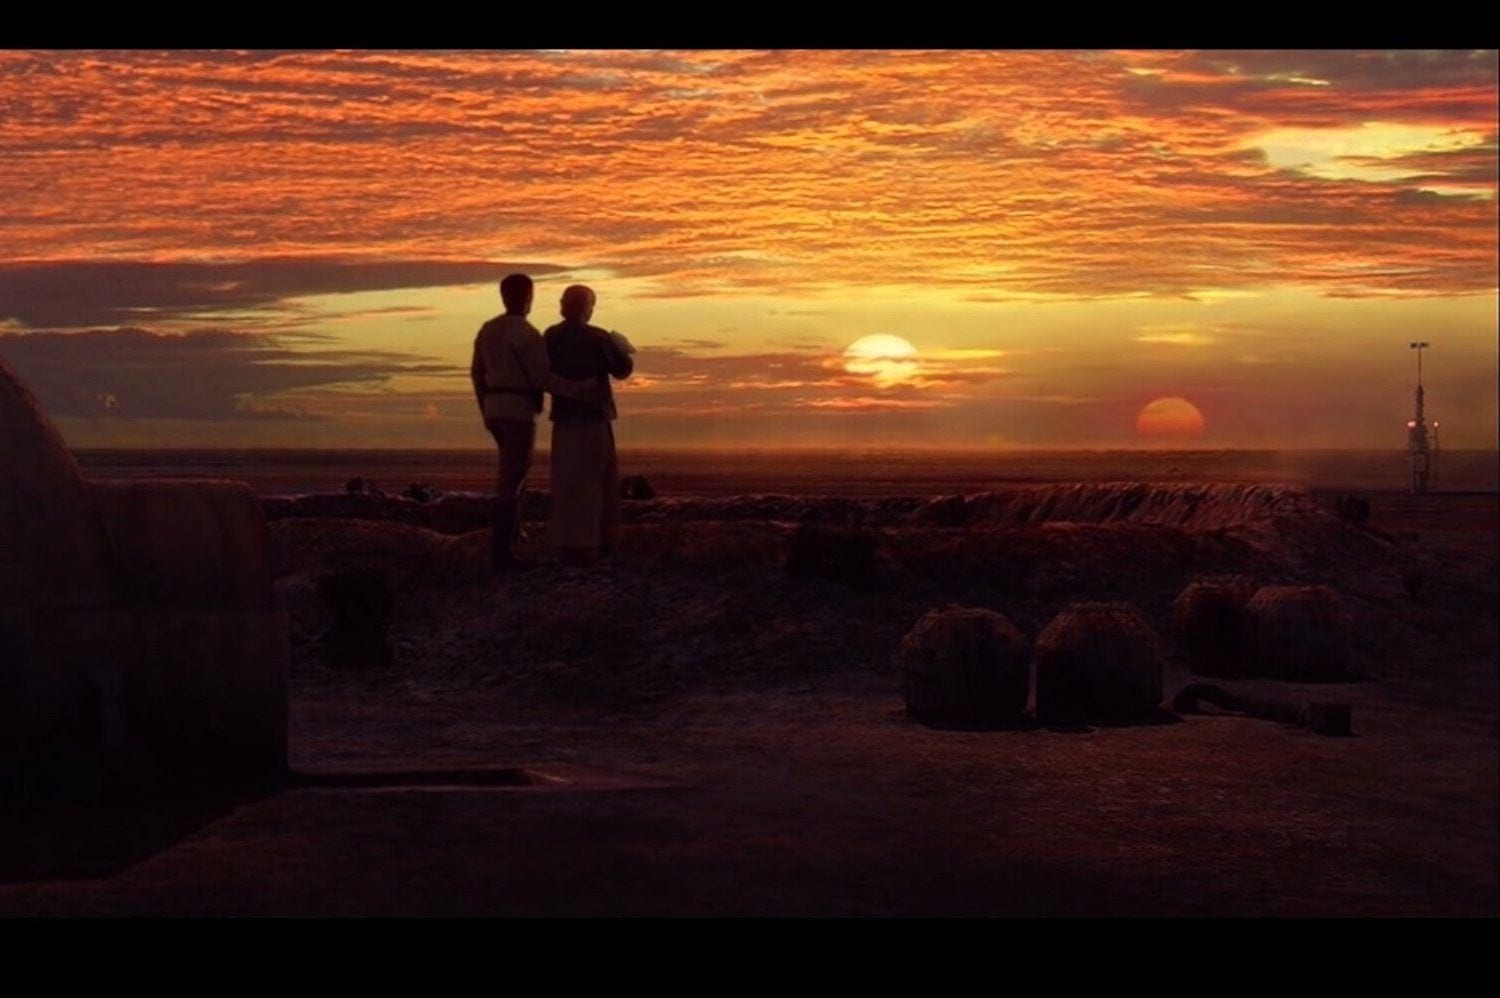 Star Wars mysteries- twin suns rising